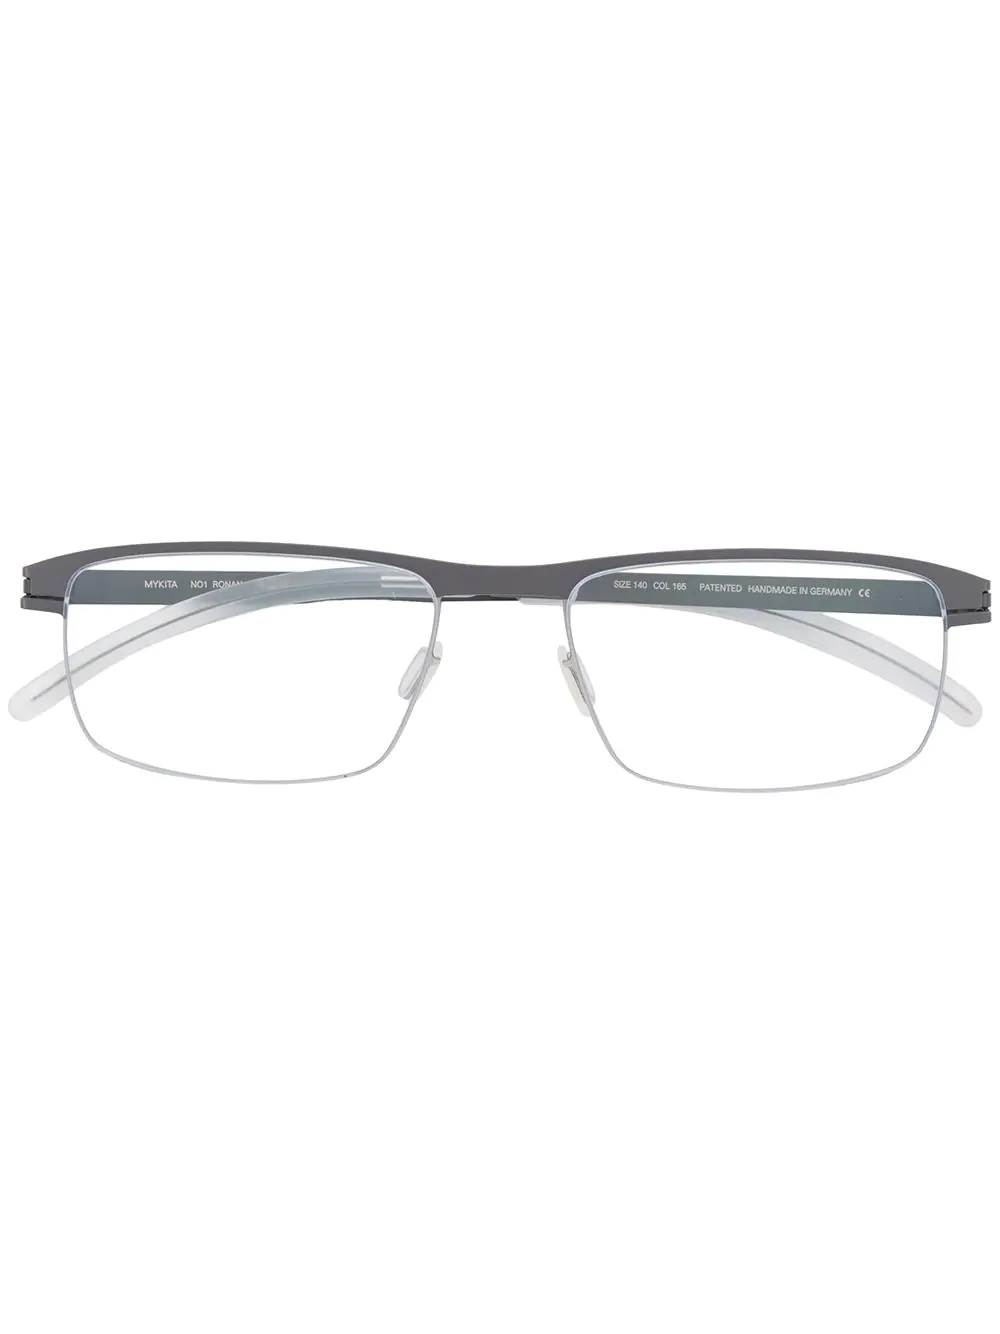 36b3a2cffe4 Mykita Rectangular Frames Glasses - Grey